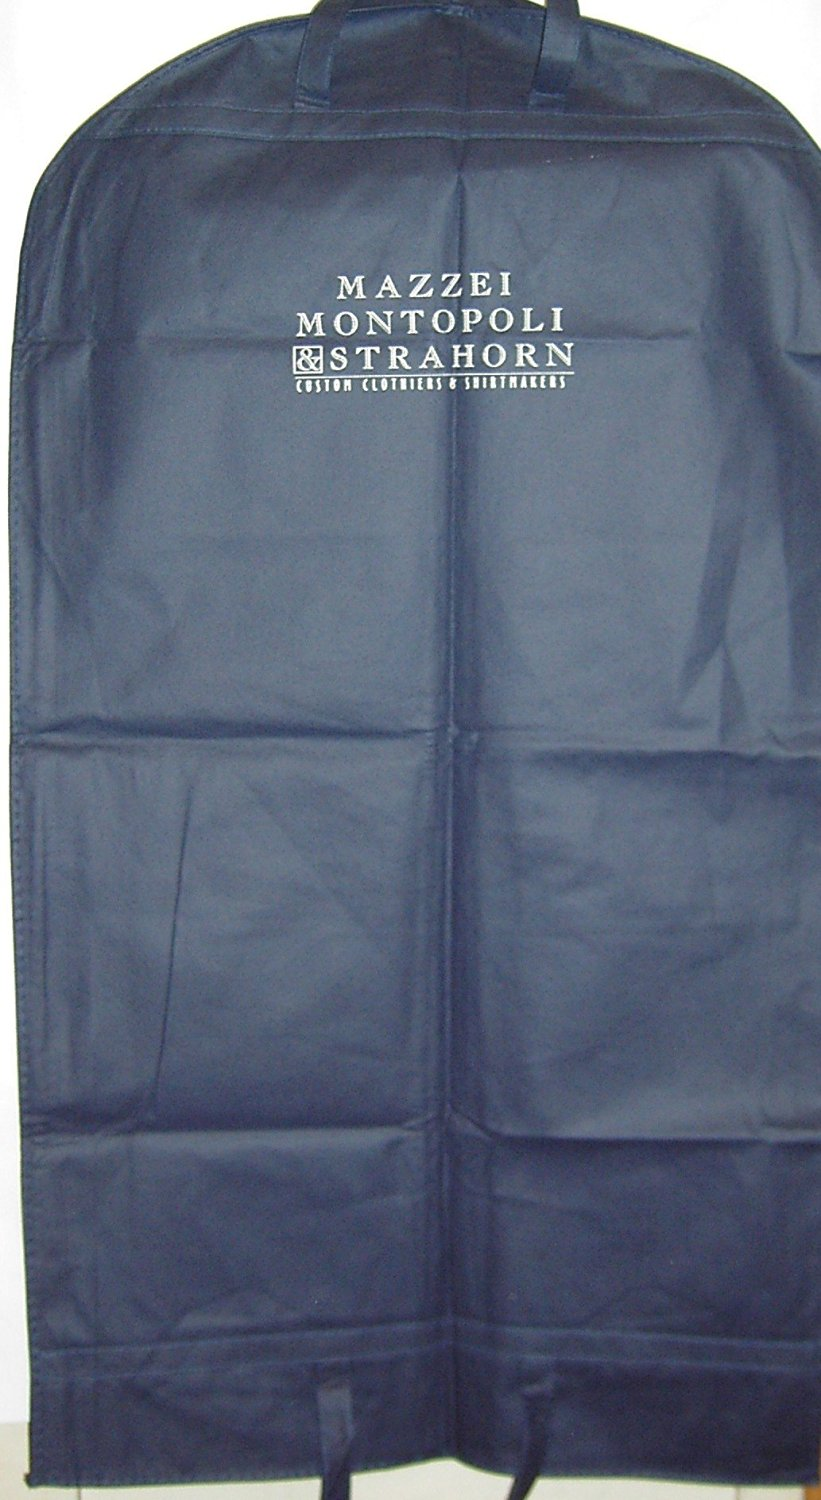 7eedc0c93388 Cheap Garment Bag Clearance, find Garment Bag Clearance deals on ...